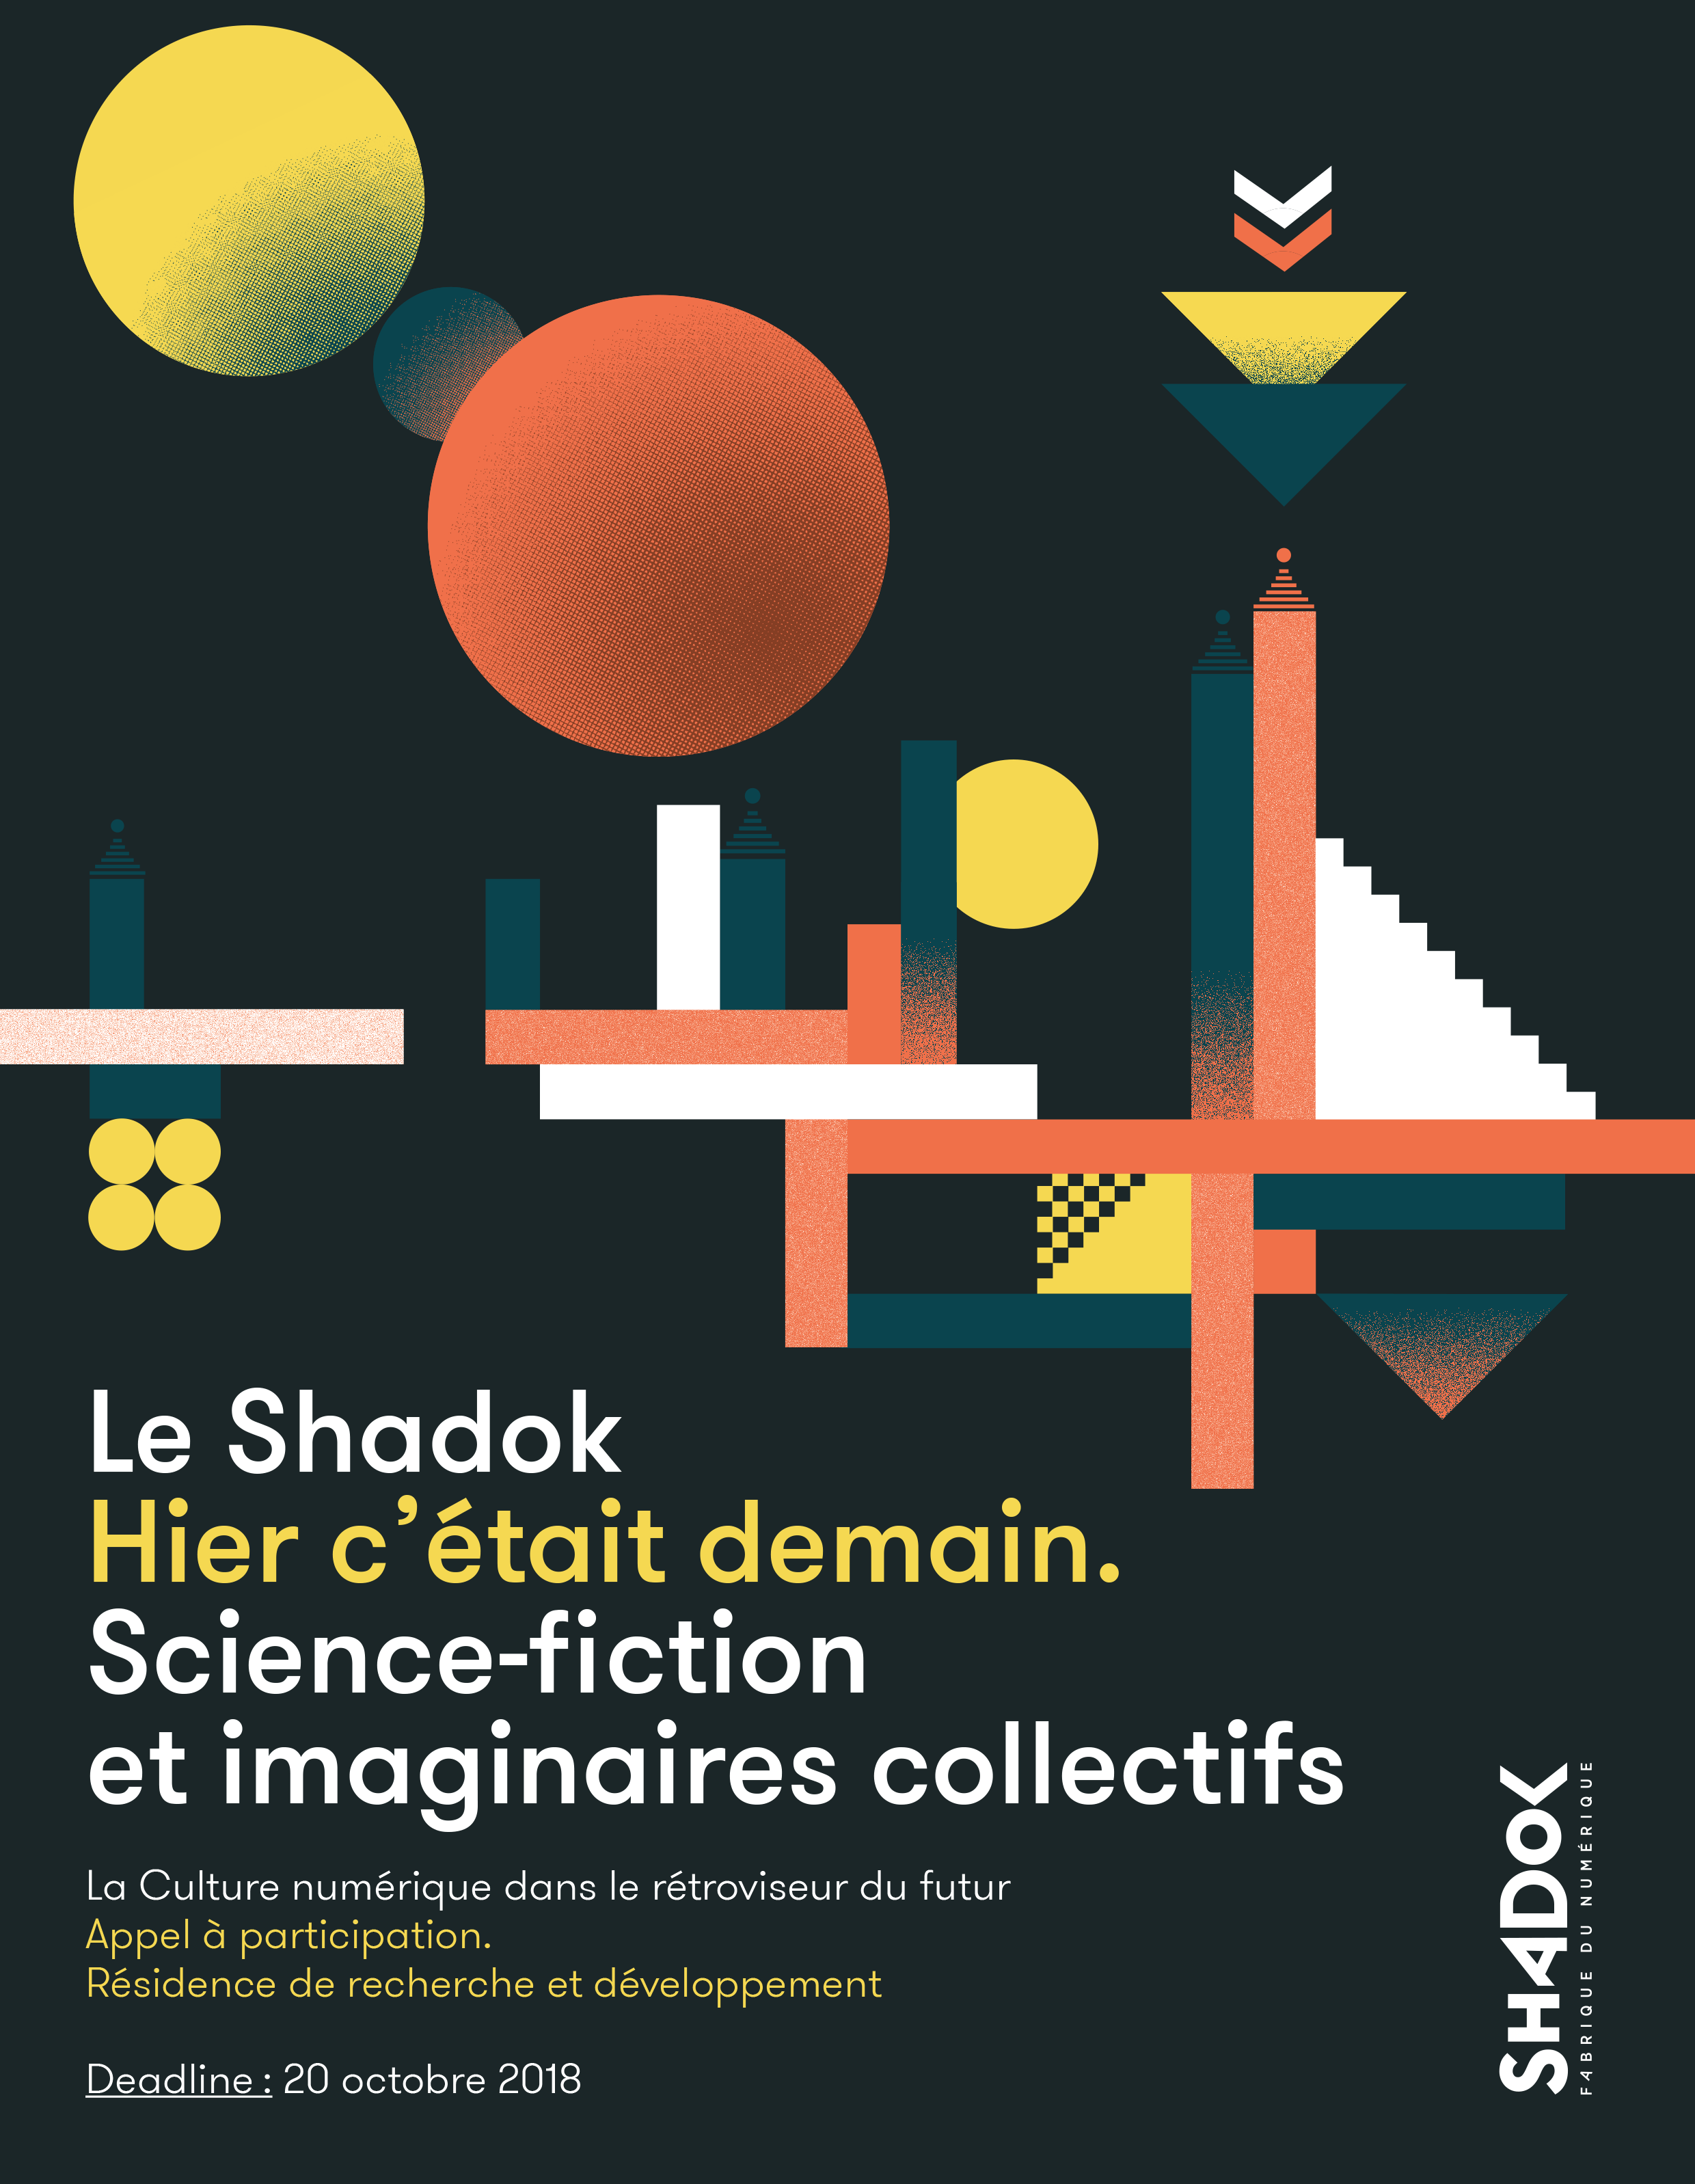 Science-fiction et imaginaires collectifs